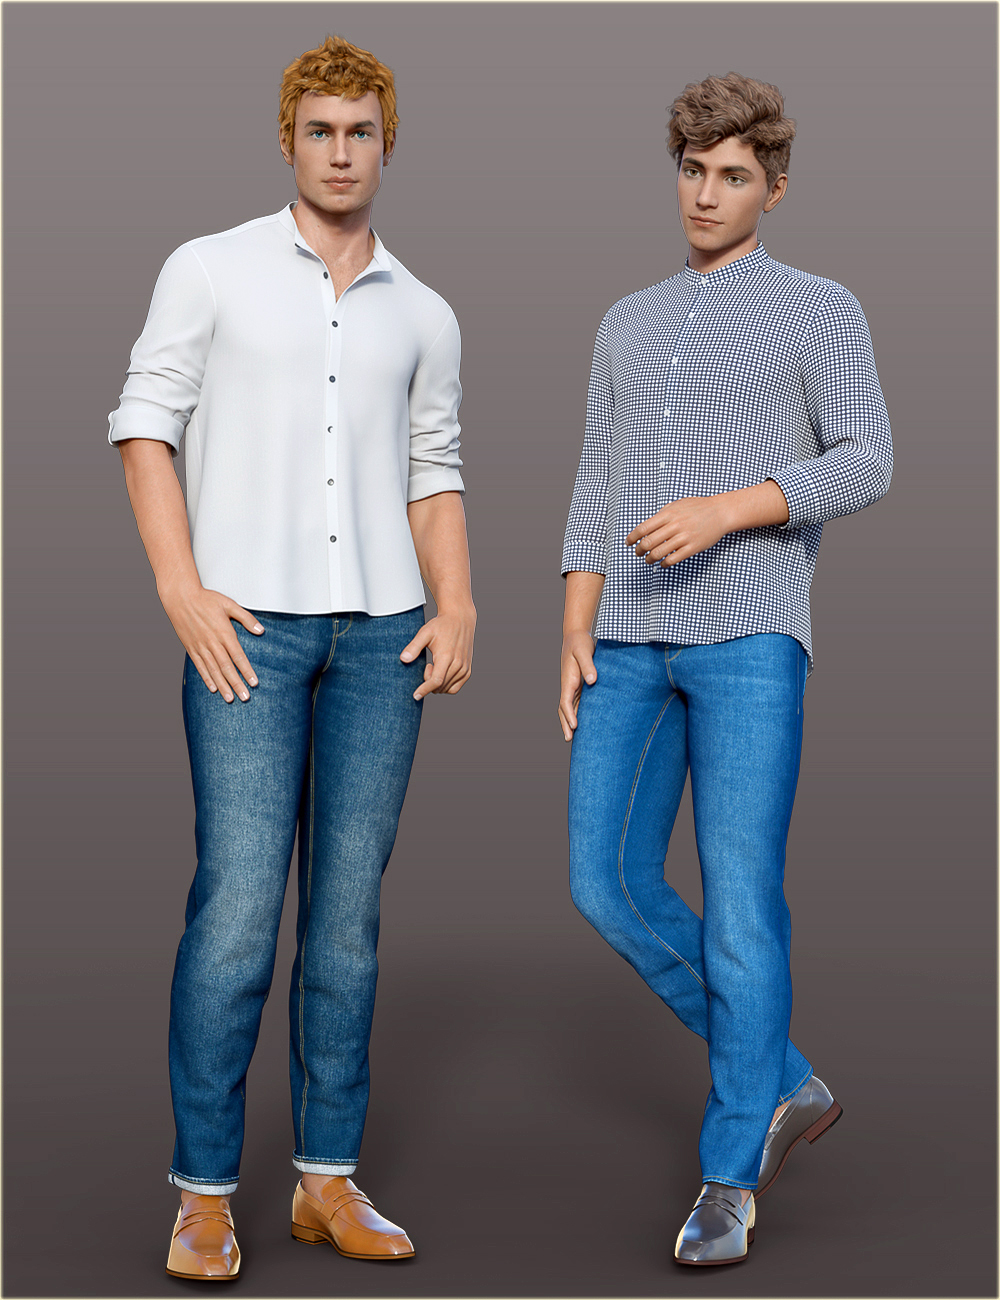 dForce H&C Mandarin Collar Shirt Outfit for Genesis 8 Male(s) by: IH Kang, 3D Models by Daz 3D